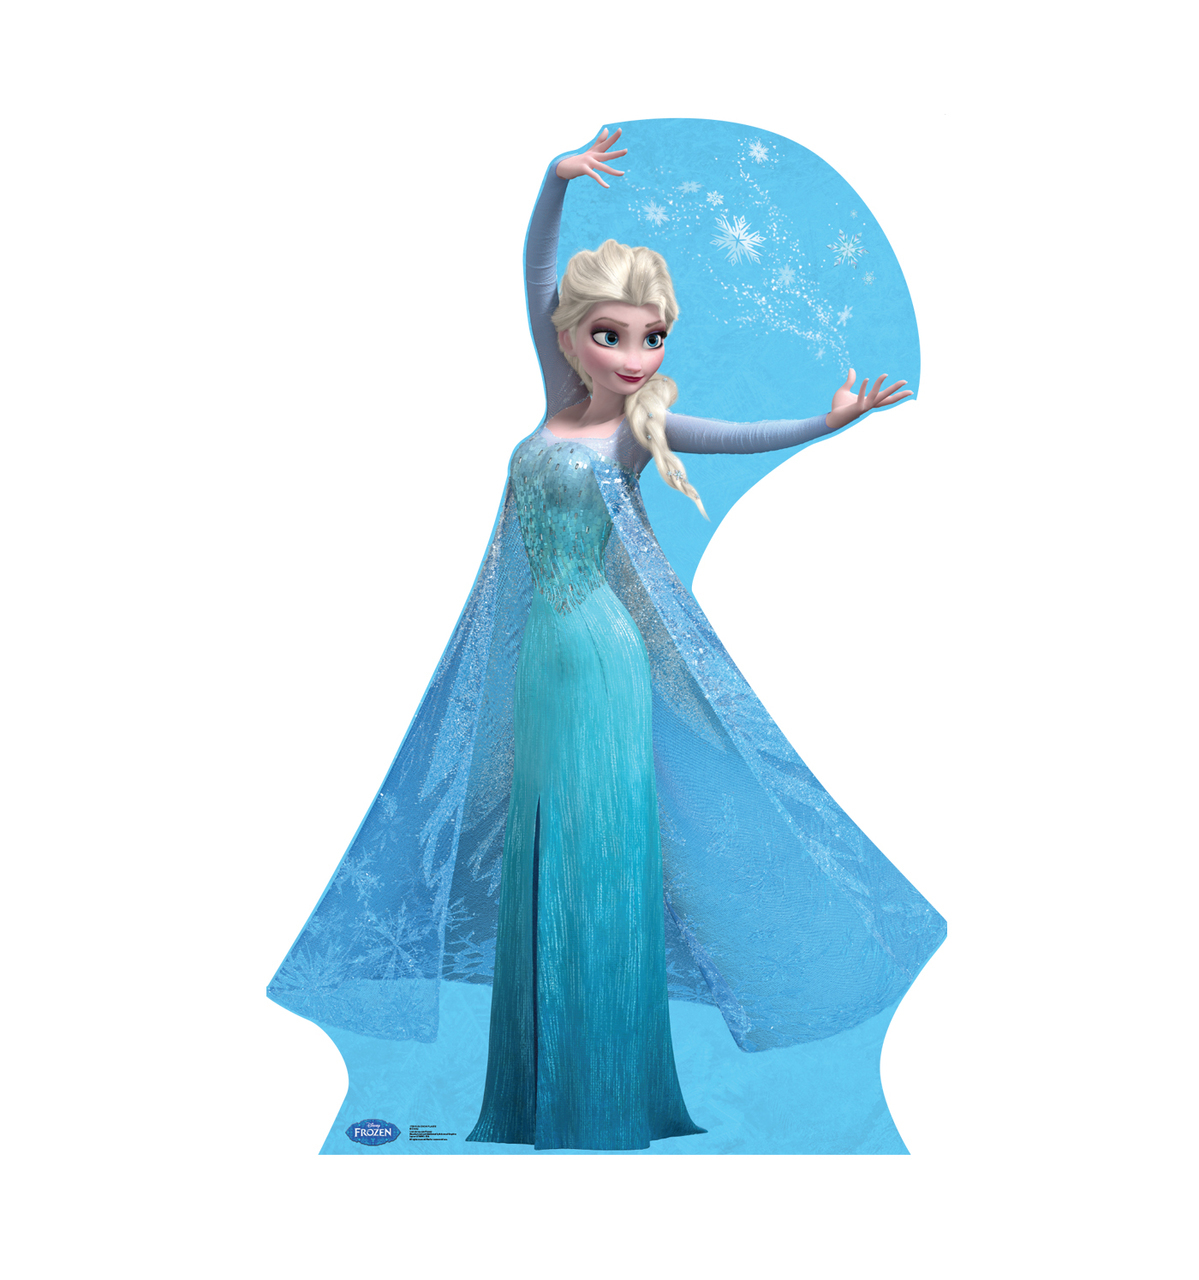 "Disney Frozen Snow Queen Elsa Life Size Cutout Stand Large Cardboard Cutout Party Prop Decor Birthday party Supplies, Disney's The Princess and the Frog Birthday decoration Size: 70"" x 32"""